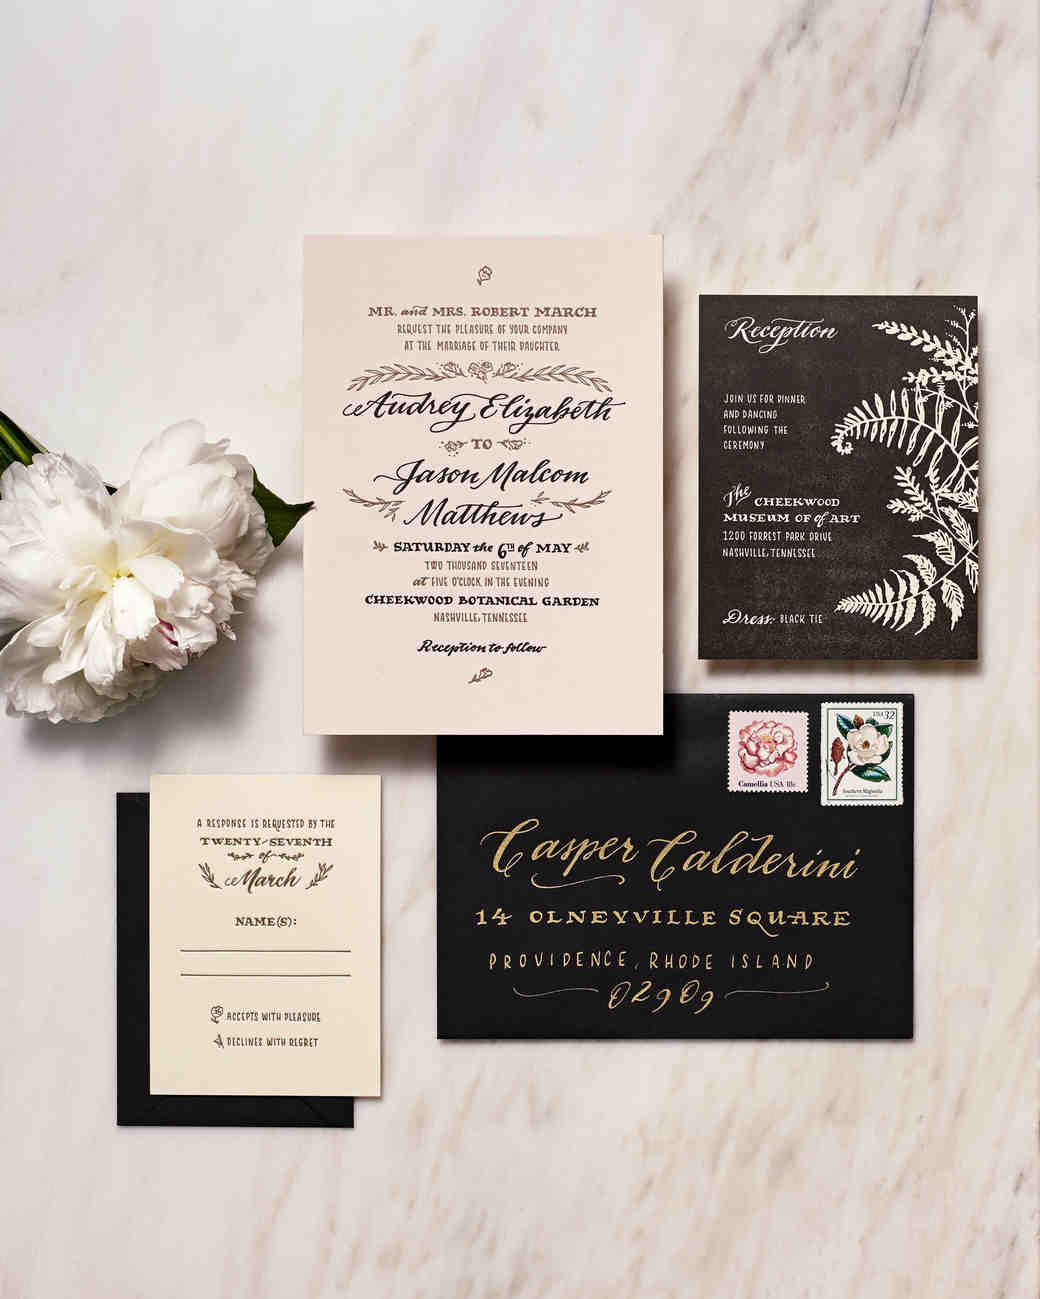 Superb Botanical Inspired Stationery